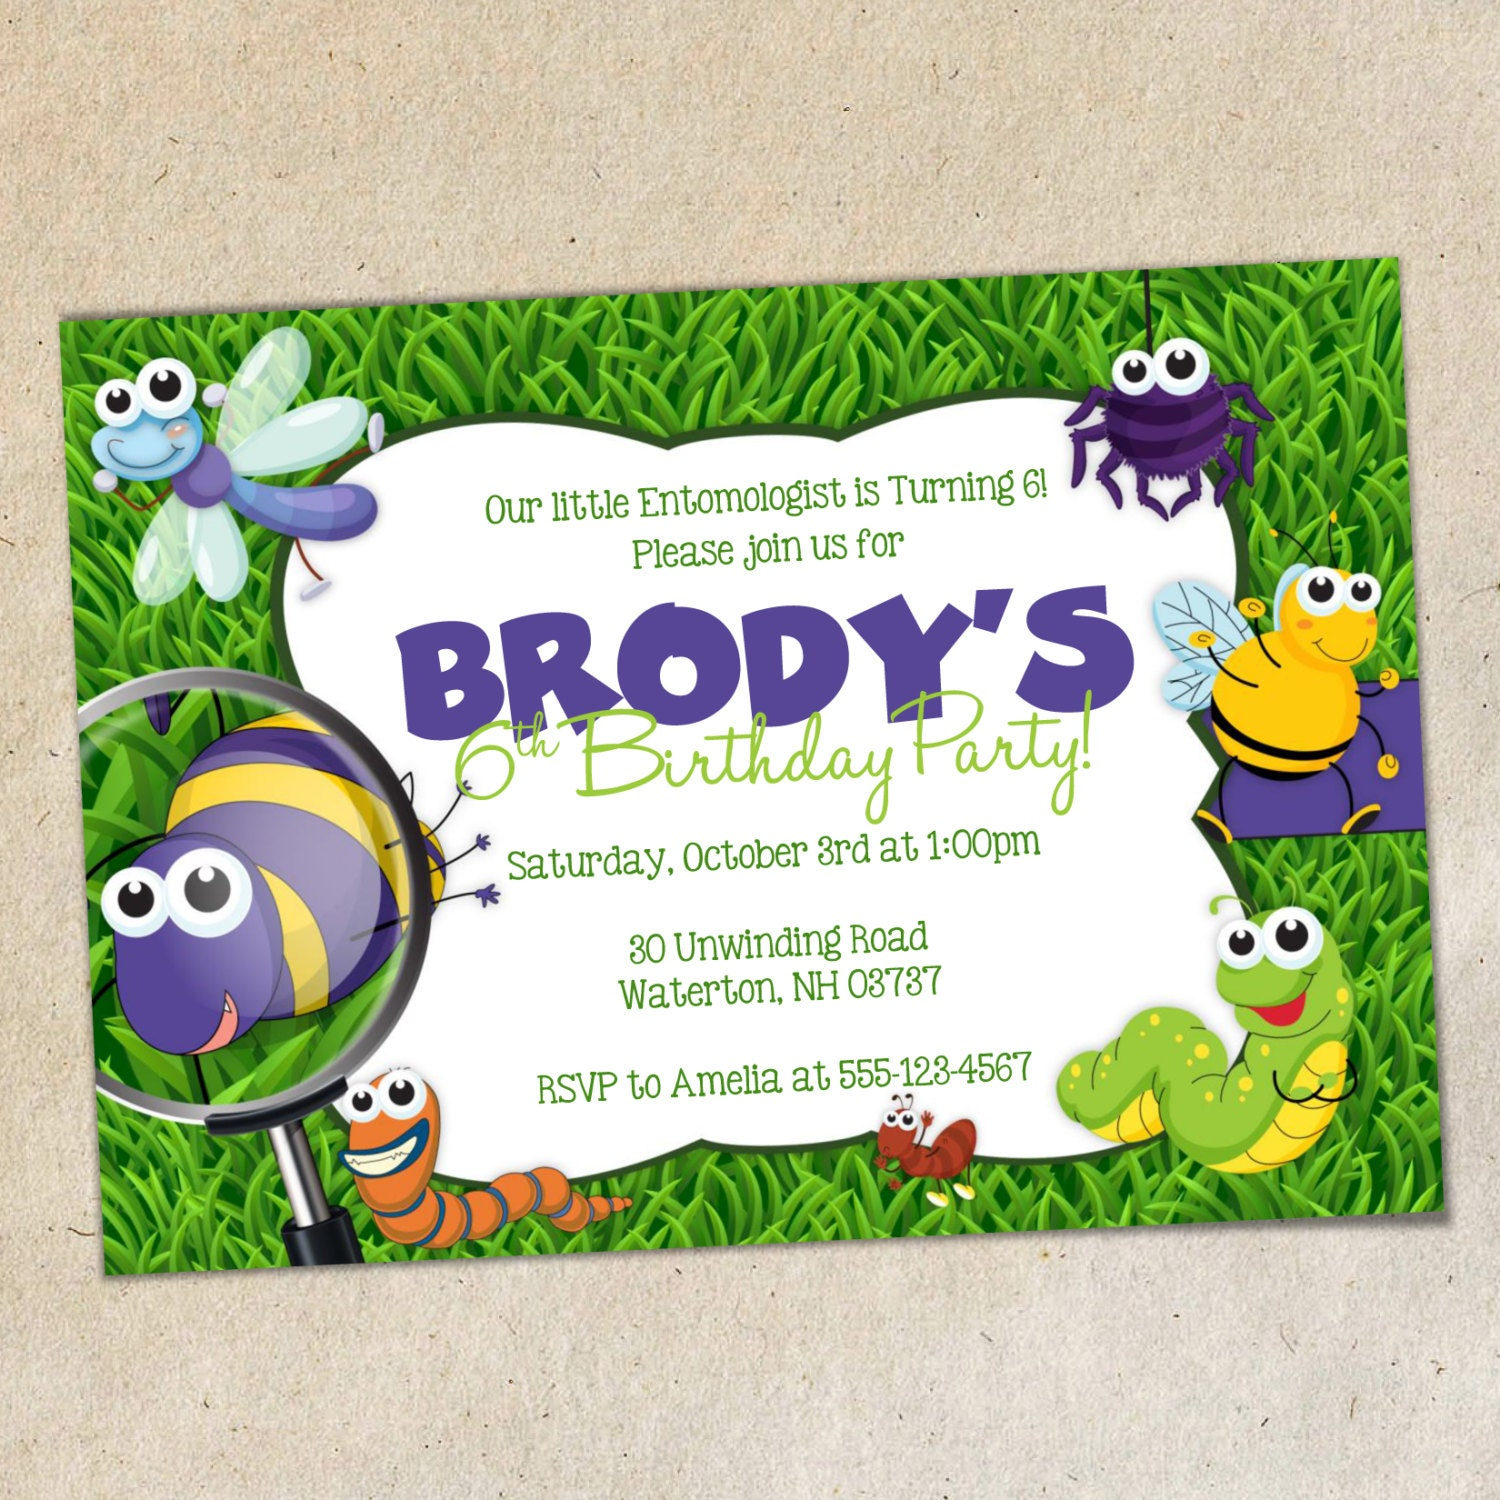 Microsoft works invitation templates free sample of proposal bugs party invitation template insects bug party invite il fullxfull bugs party invitation template insects microsoft works invitation templates free stopboris Choice Image